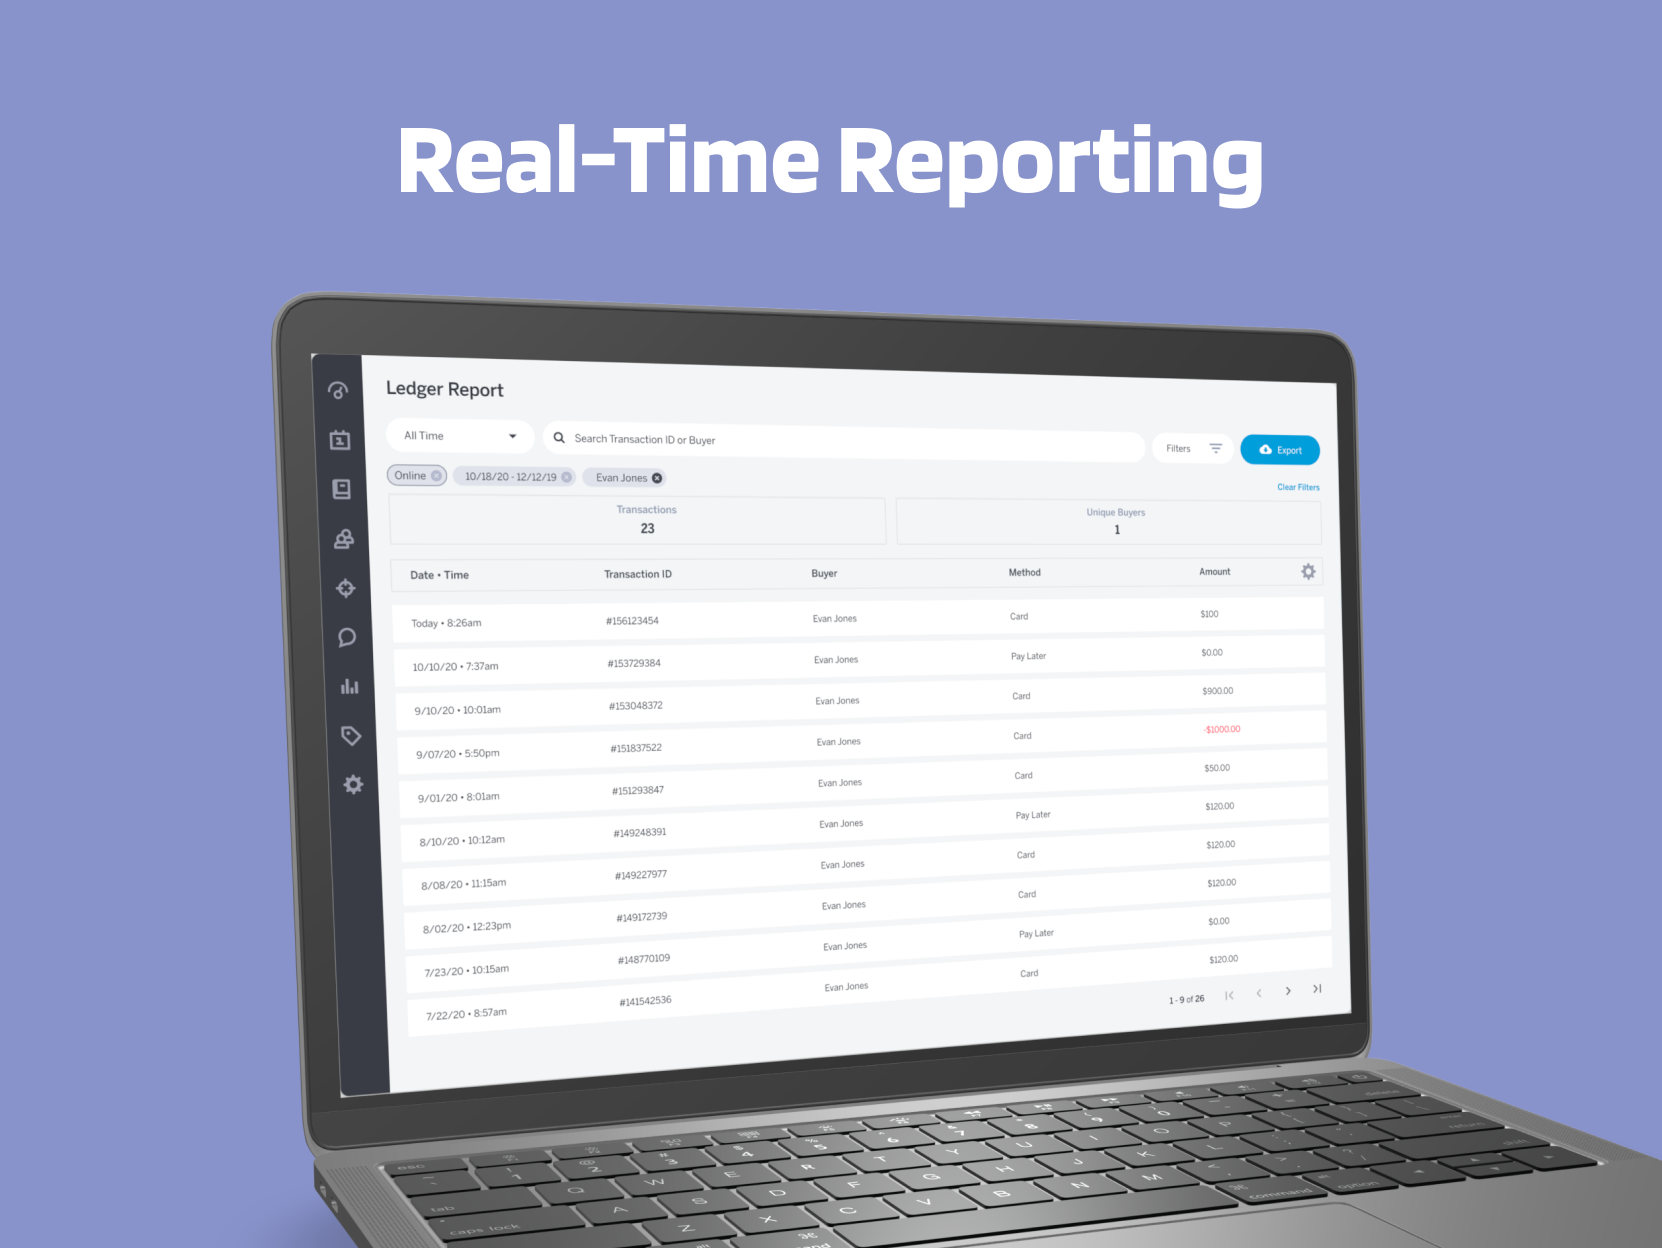 Upper Hand empowers quicker and more informed business decisions through real-time data that's accurate and accessible. Visualize business KPIs over time, discover buyer trends, & detect impending blockers to growth.